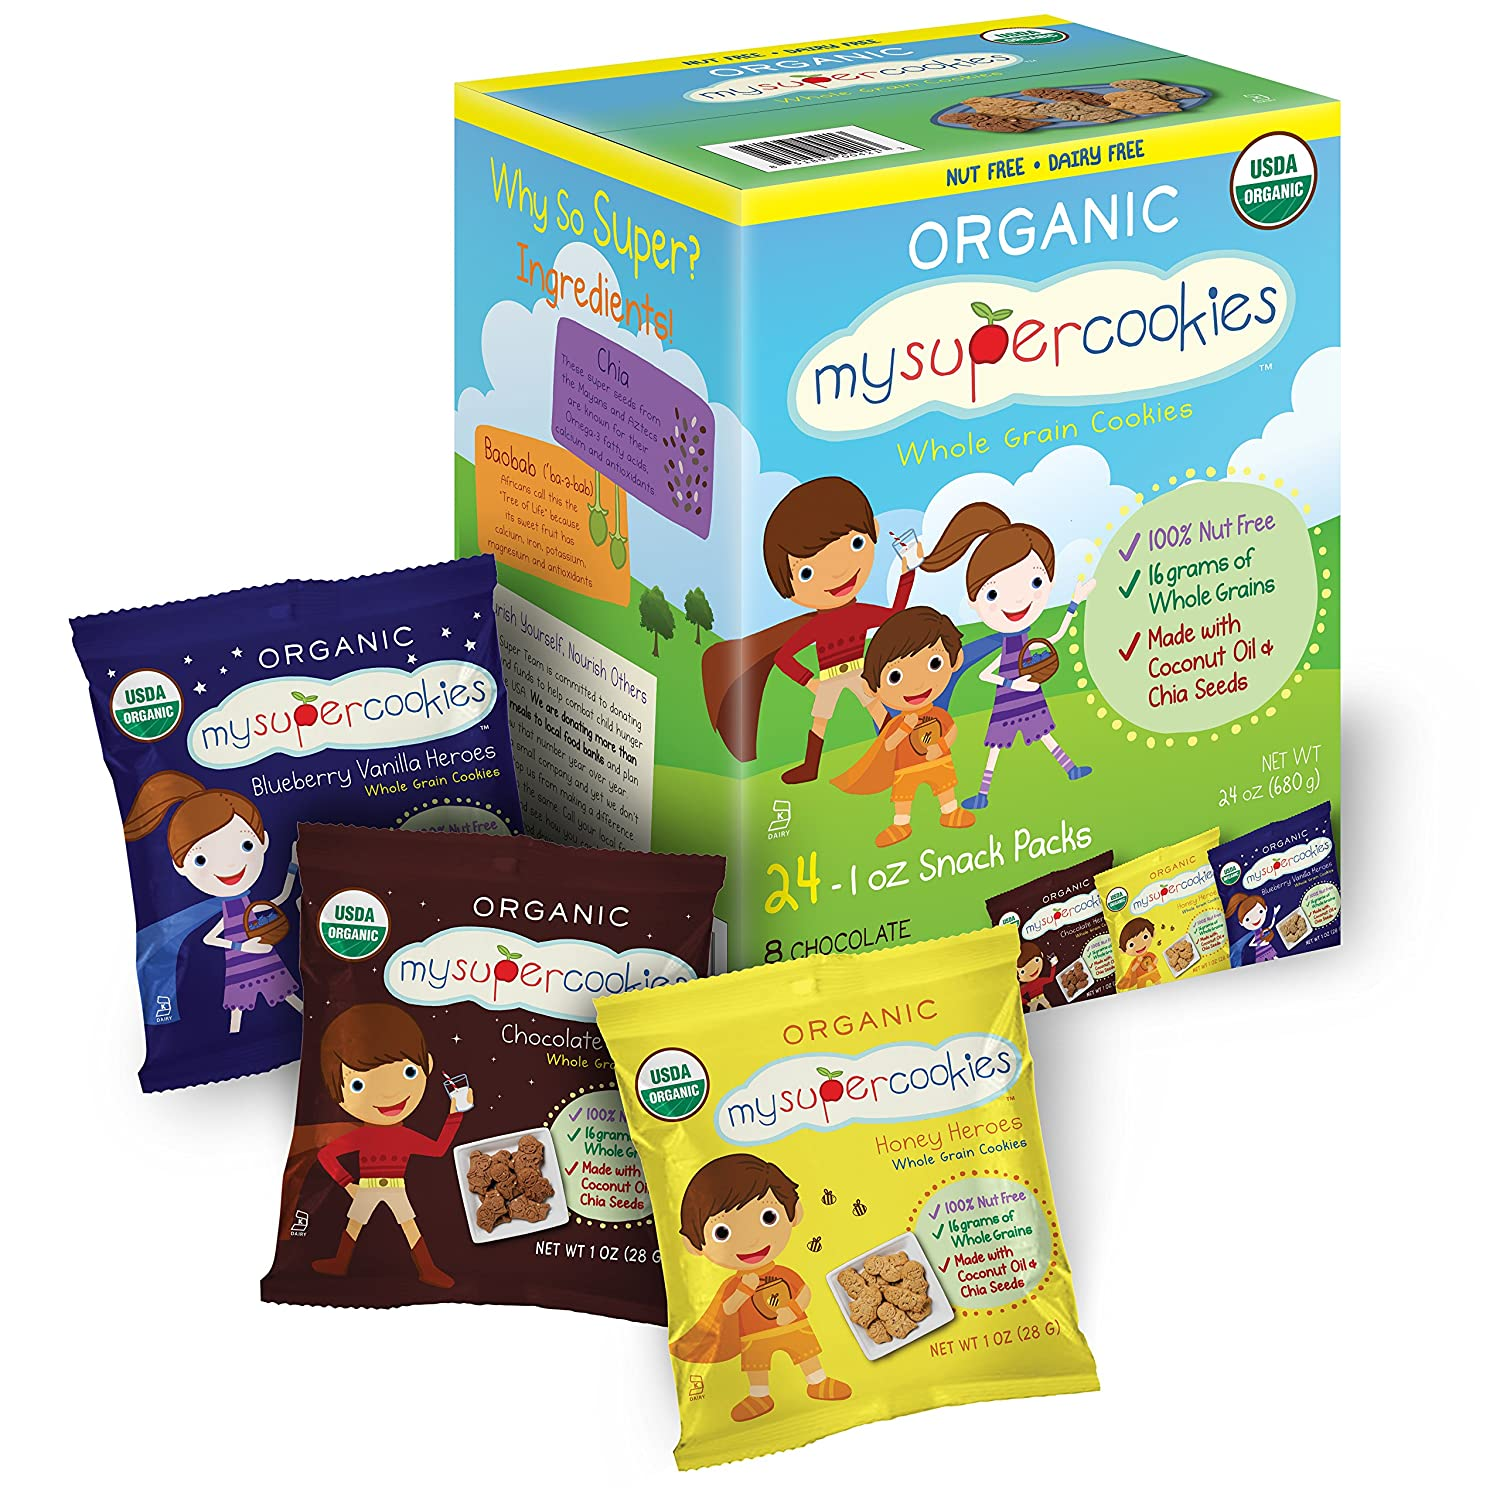 MySuperCookies Organic Whole Grain, Healthy Snacks for Kids — 24 Snack Packs, Peanut & Tree Nut Free, Kosher/Perfect for Valentine's Day, Class Parties and Birthdays